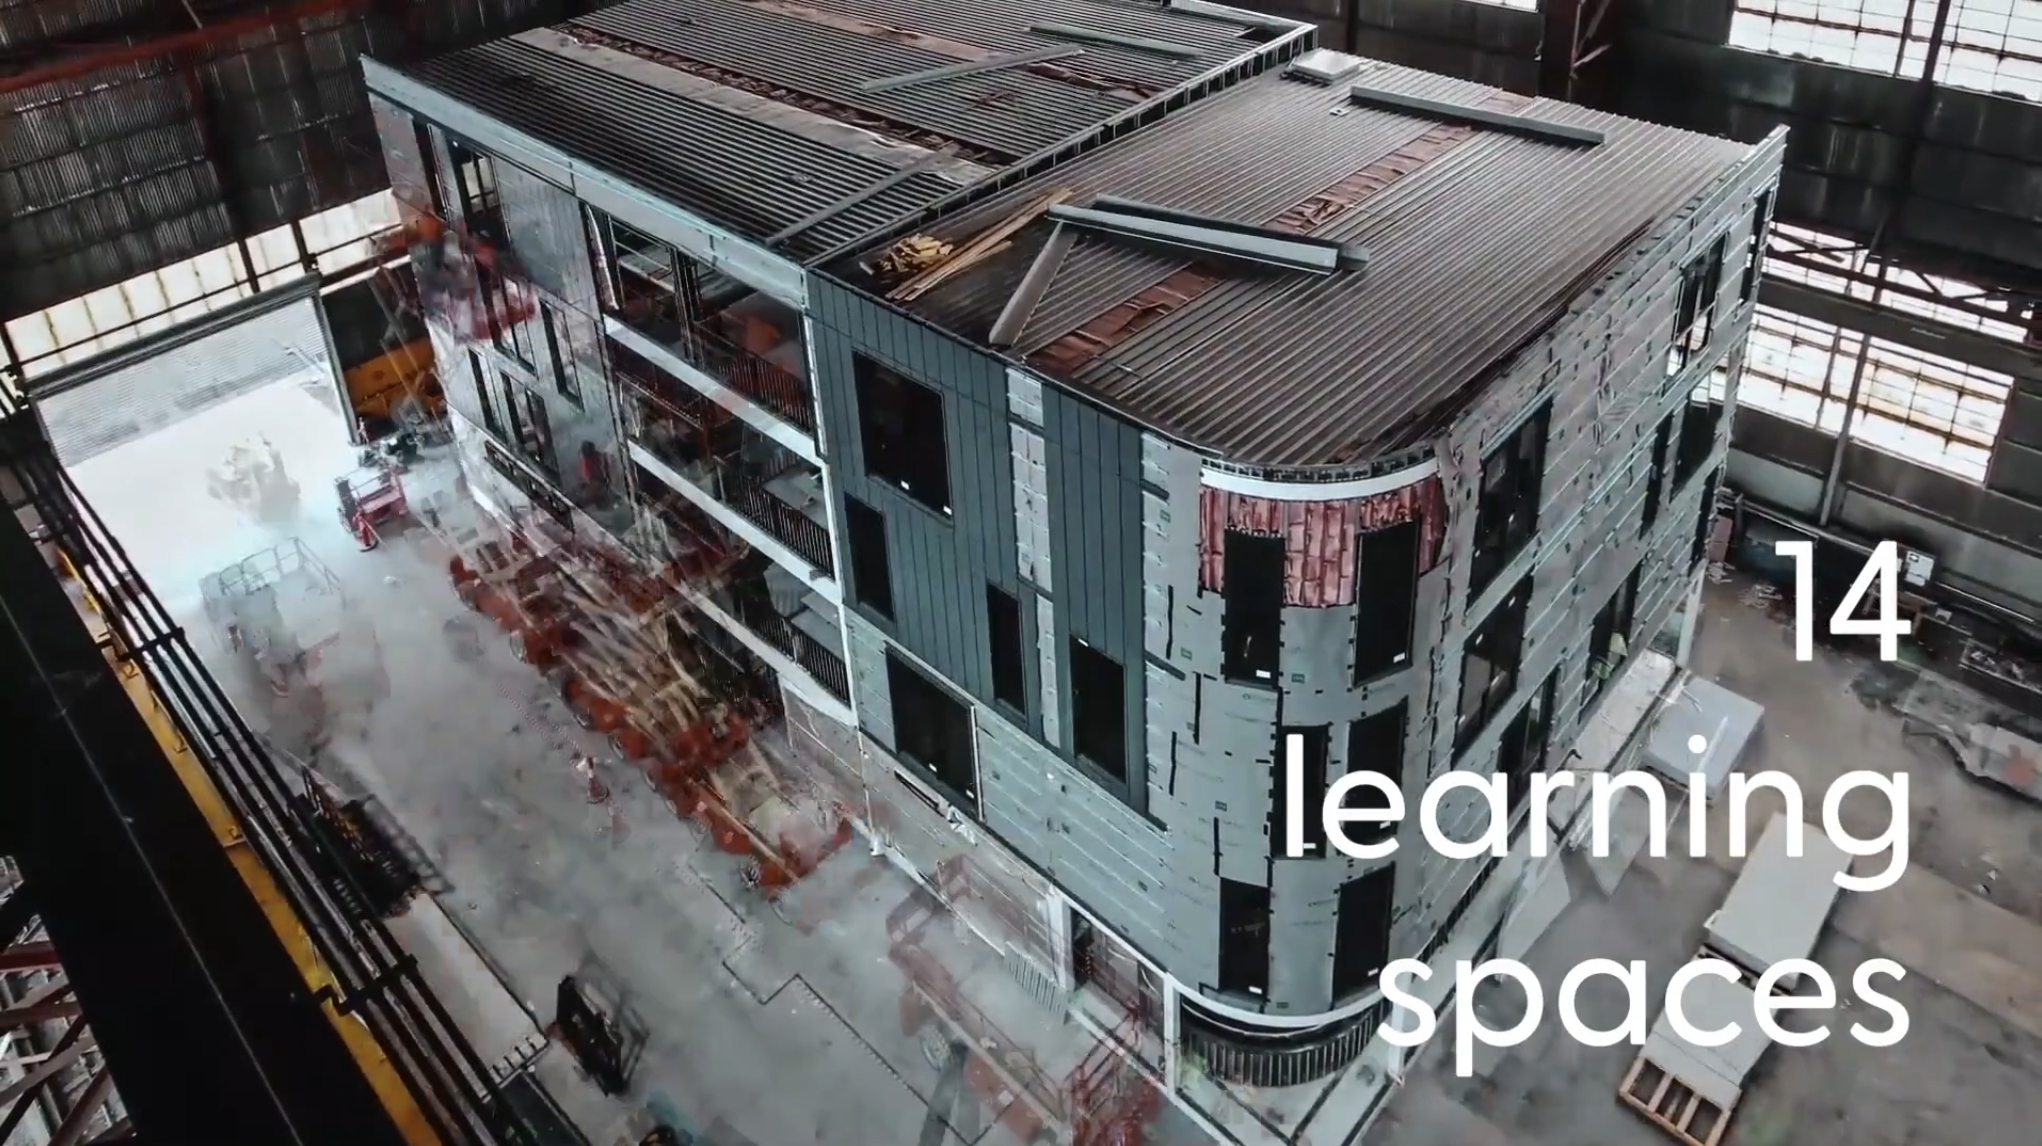 Building under construction with text on screen saying 14 learning spaces